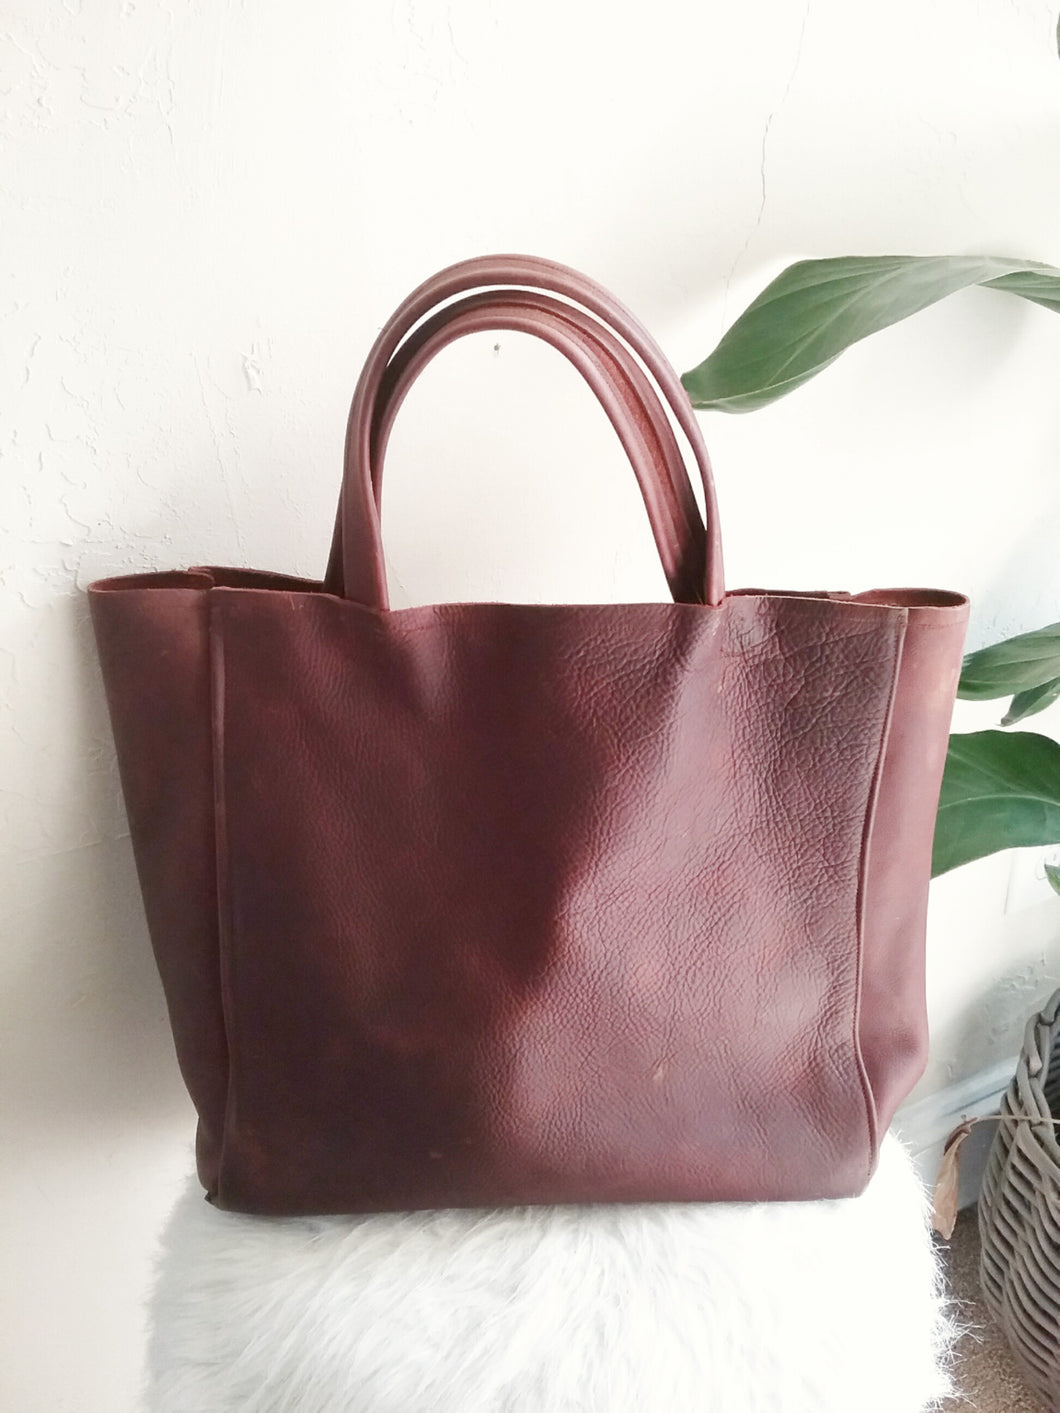 CLASSIC TOTE REDUX / BROWN